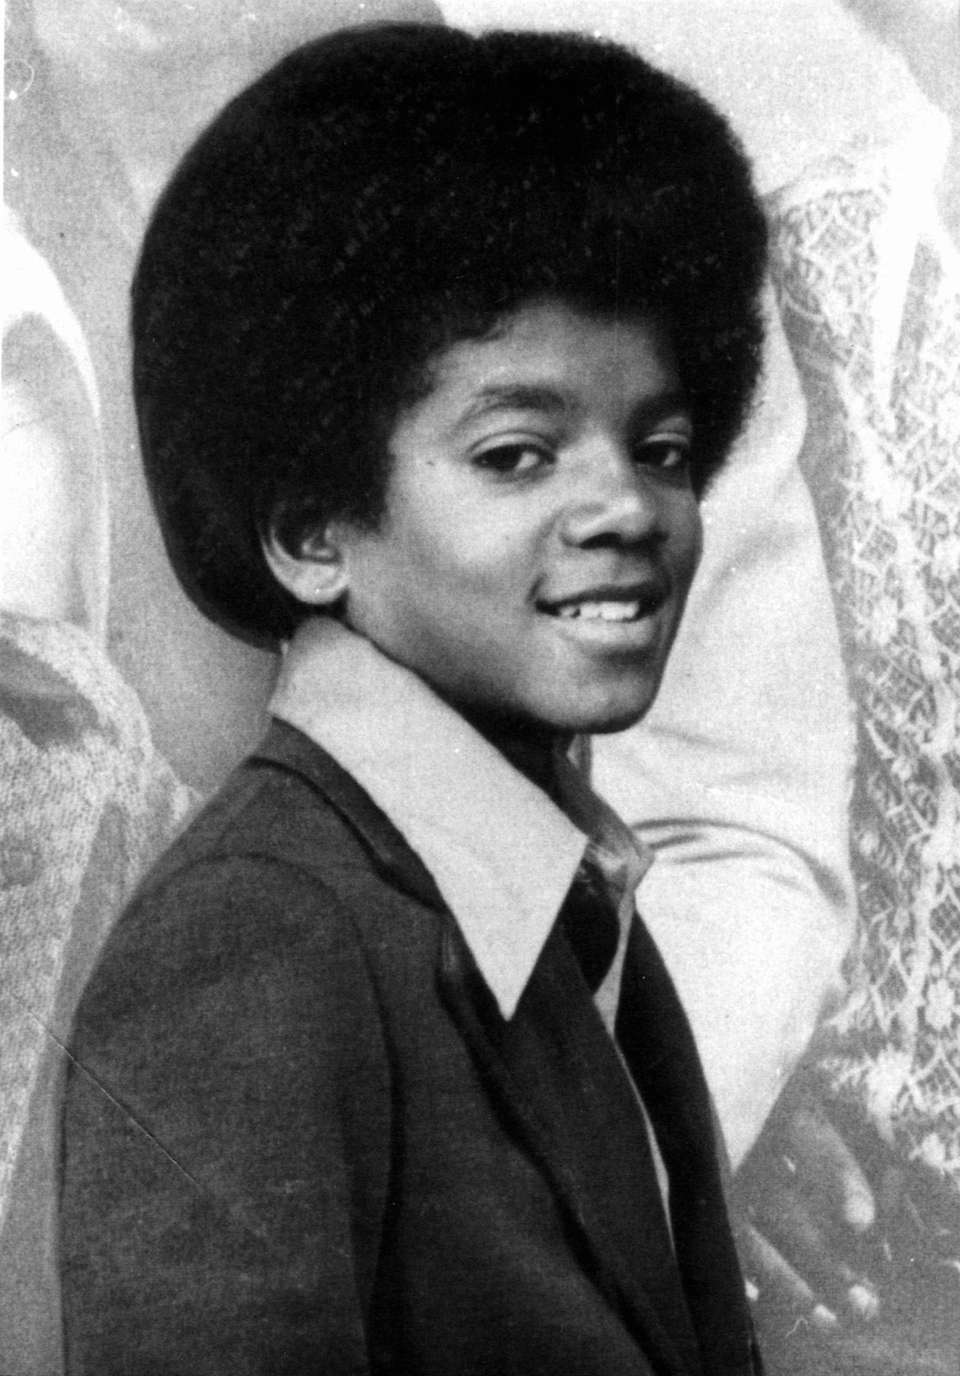 Michael Jackson when he was about 13 years